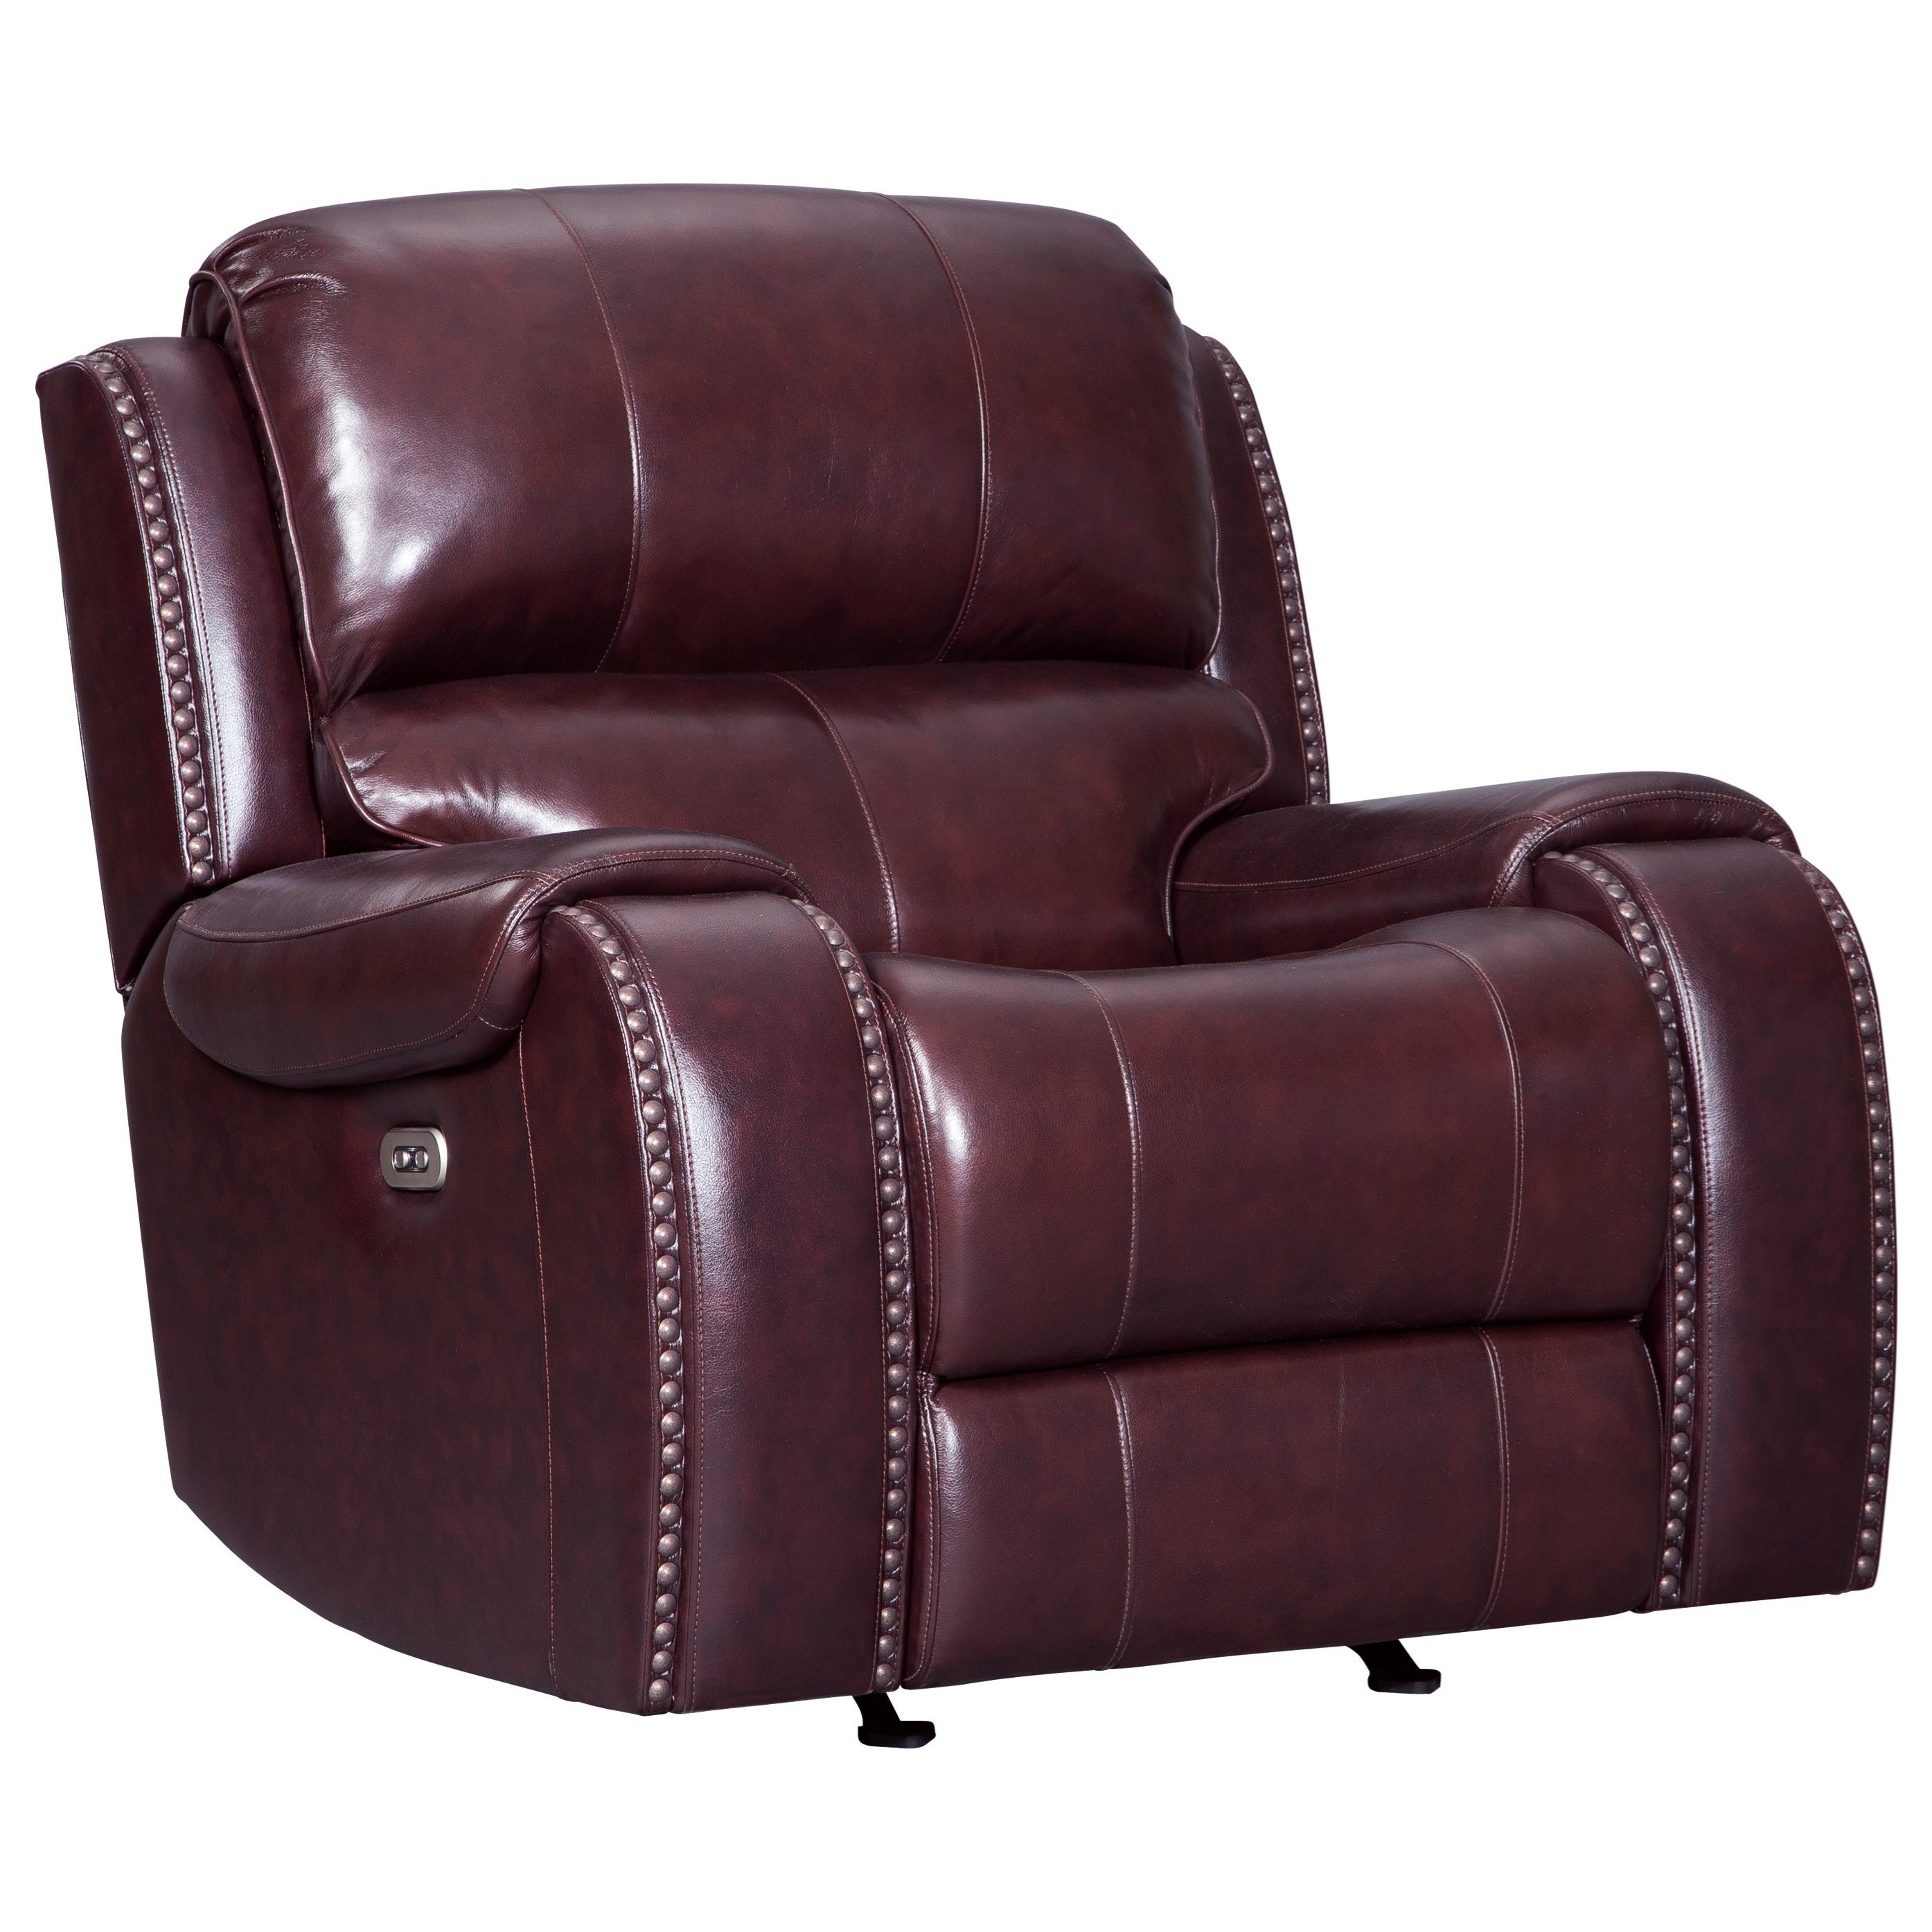 Signature Design by Ashley Gilmanton Power Rocker Recliner w/ Adjustable Headrest - Olinde\u0027s Furniture - Three Way Recliners  sc 1 st  Olinde\u0027s Furniture & Signature Design by Ashley Gilmanton Power Rocker Recliner w ... islam-shia.org